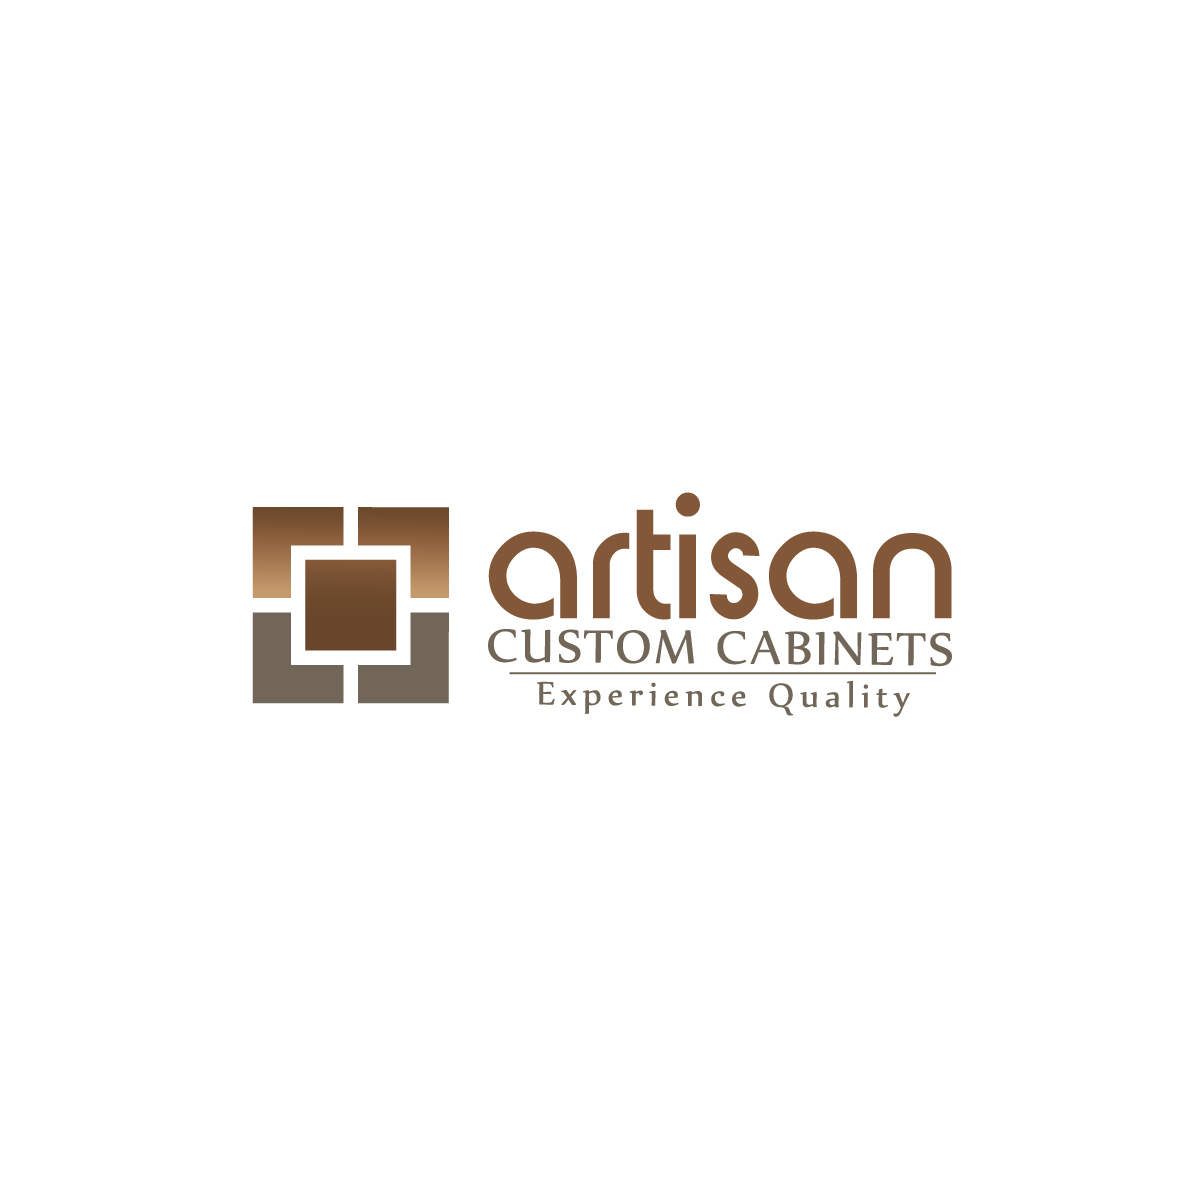 Logo Design by rockin - Entry No. 87 in the Logo Design Contest Creative Logo Design for Artisan Custom Cabinets.